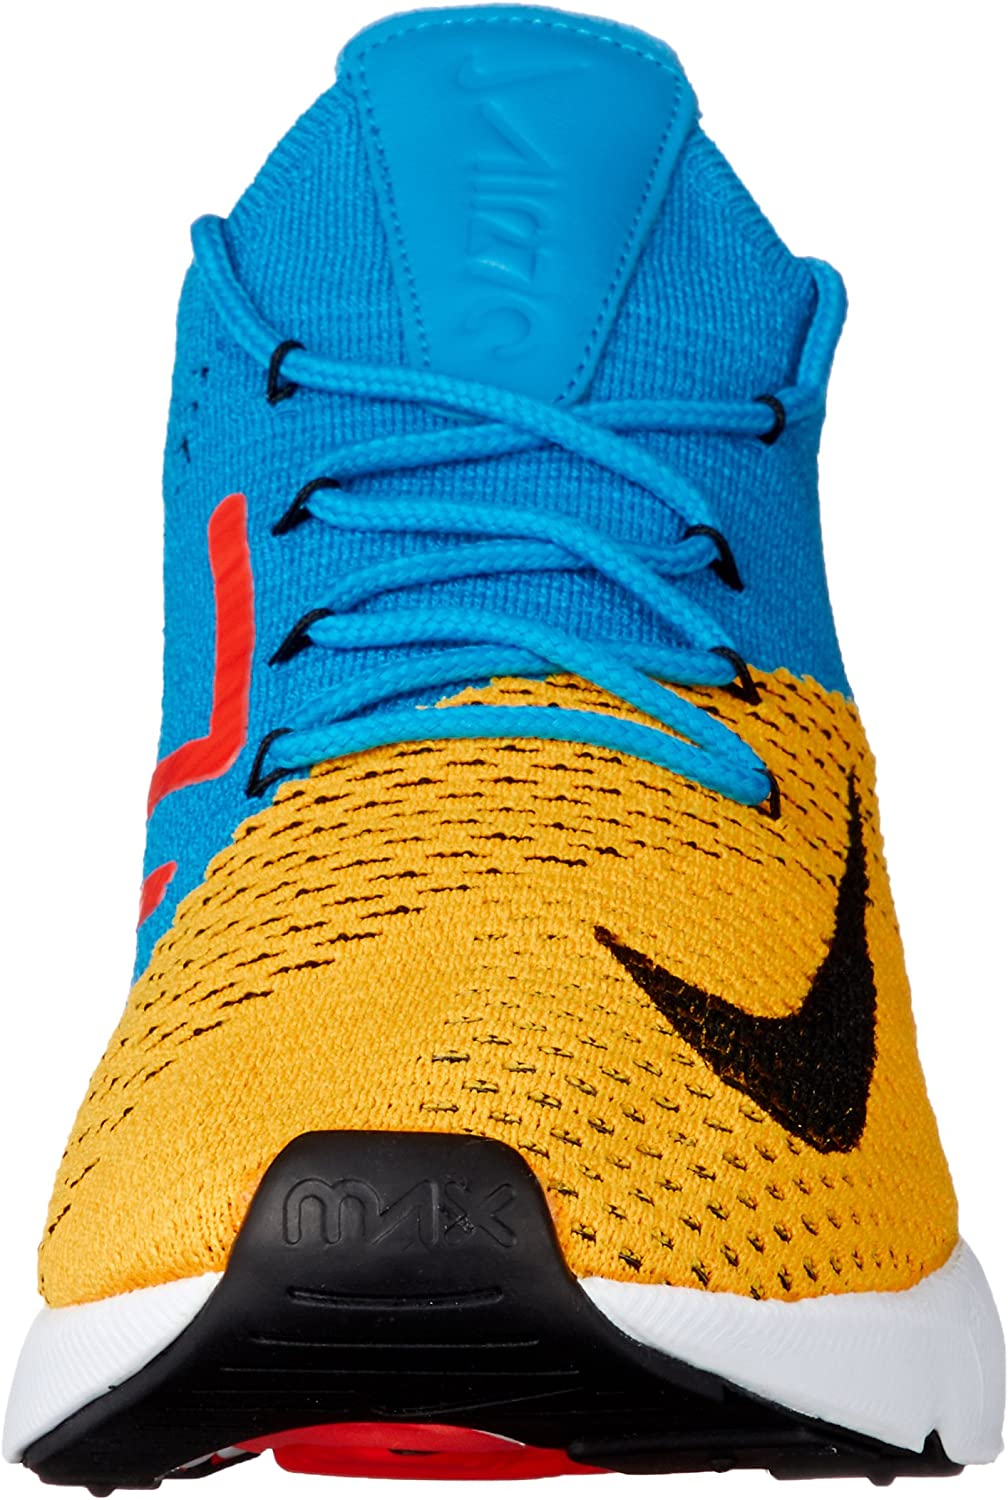 Nike Baskets Air Max 270 Flyknit Ref. AO1023 800: Amazon